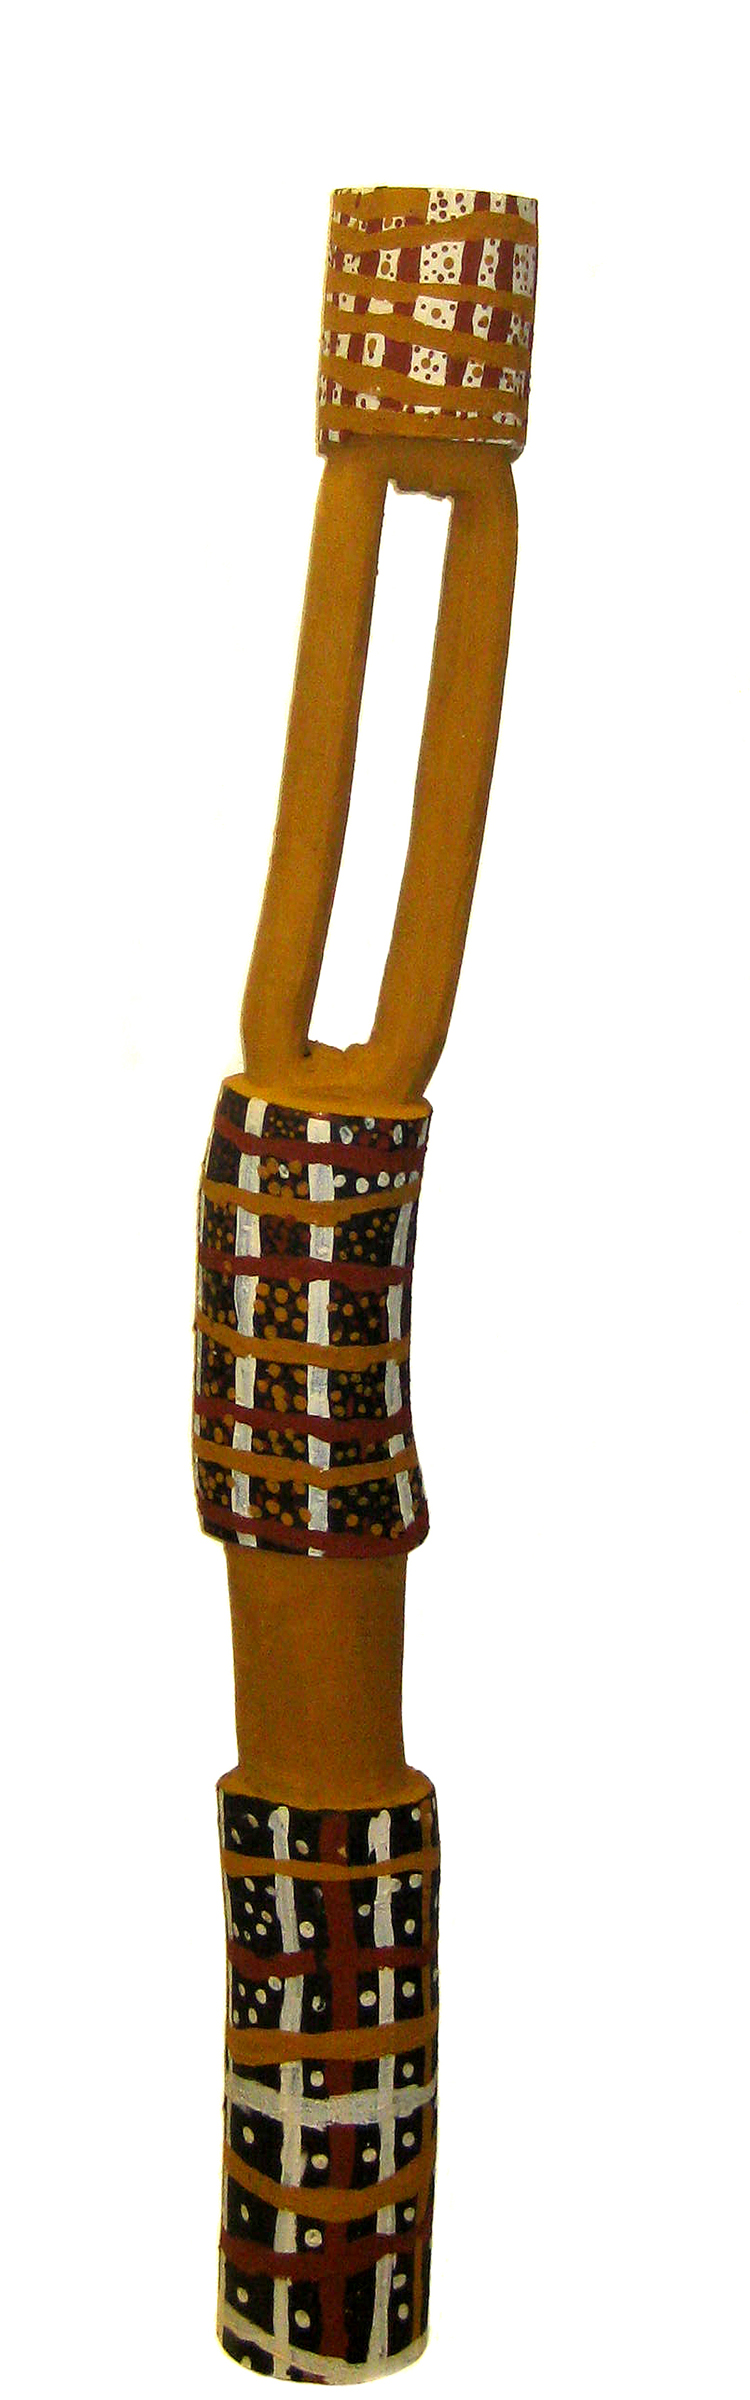 Kulama, 2011  natural earth pigments on ironwood 47inches (120 cm)   Jilamara Arts & Crafts Catalog #157-11     EMAIL INQUIRY